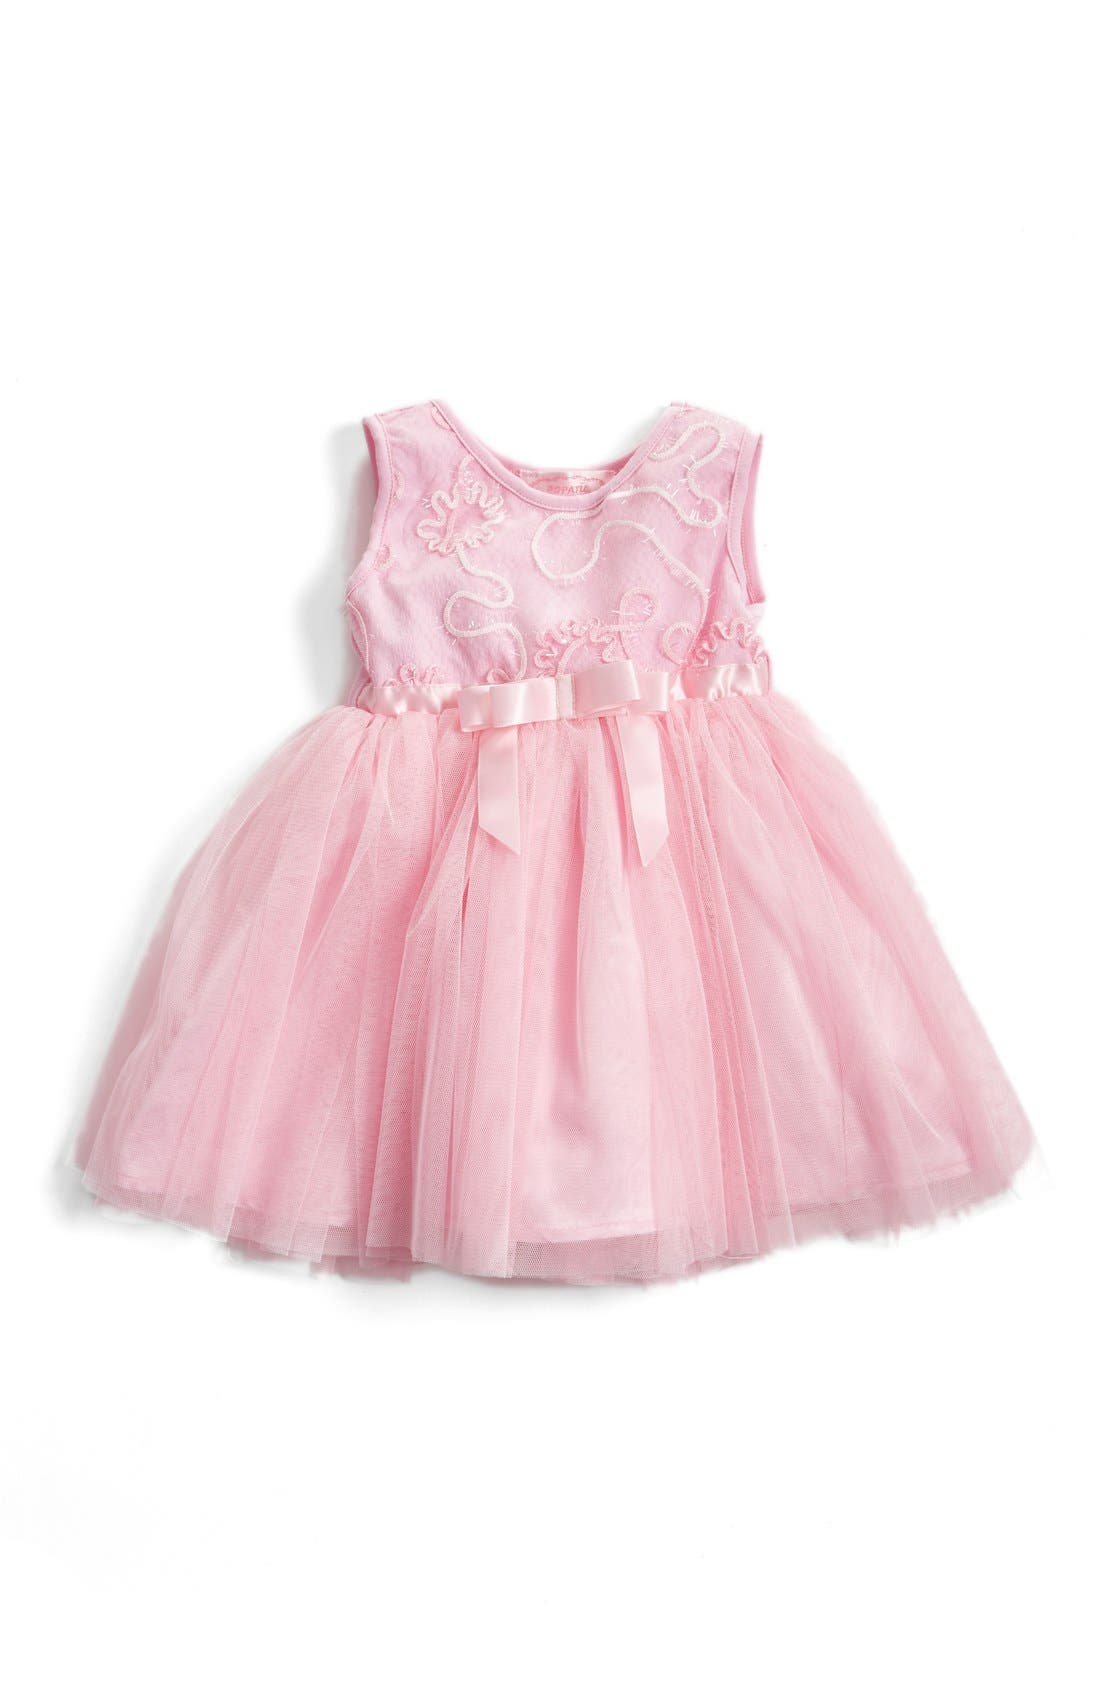 Sequin Flower Tulle Dress,                             Main thumbnail 1, color,                             Pink